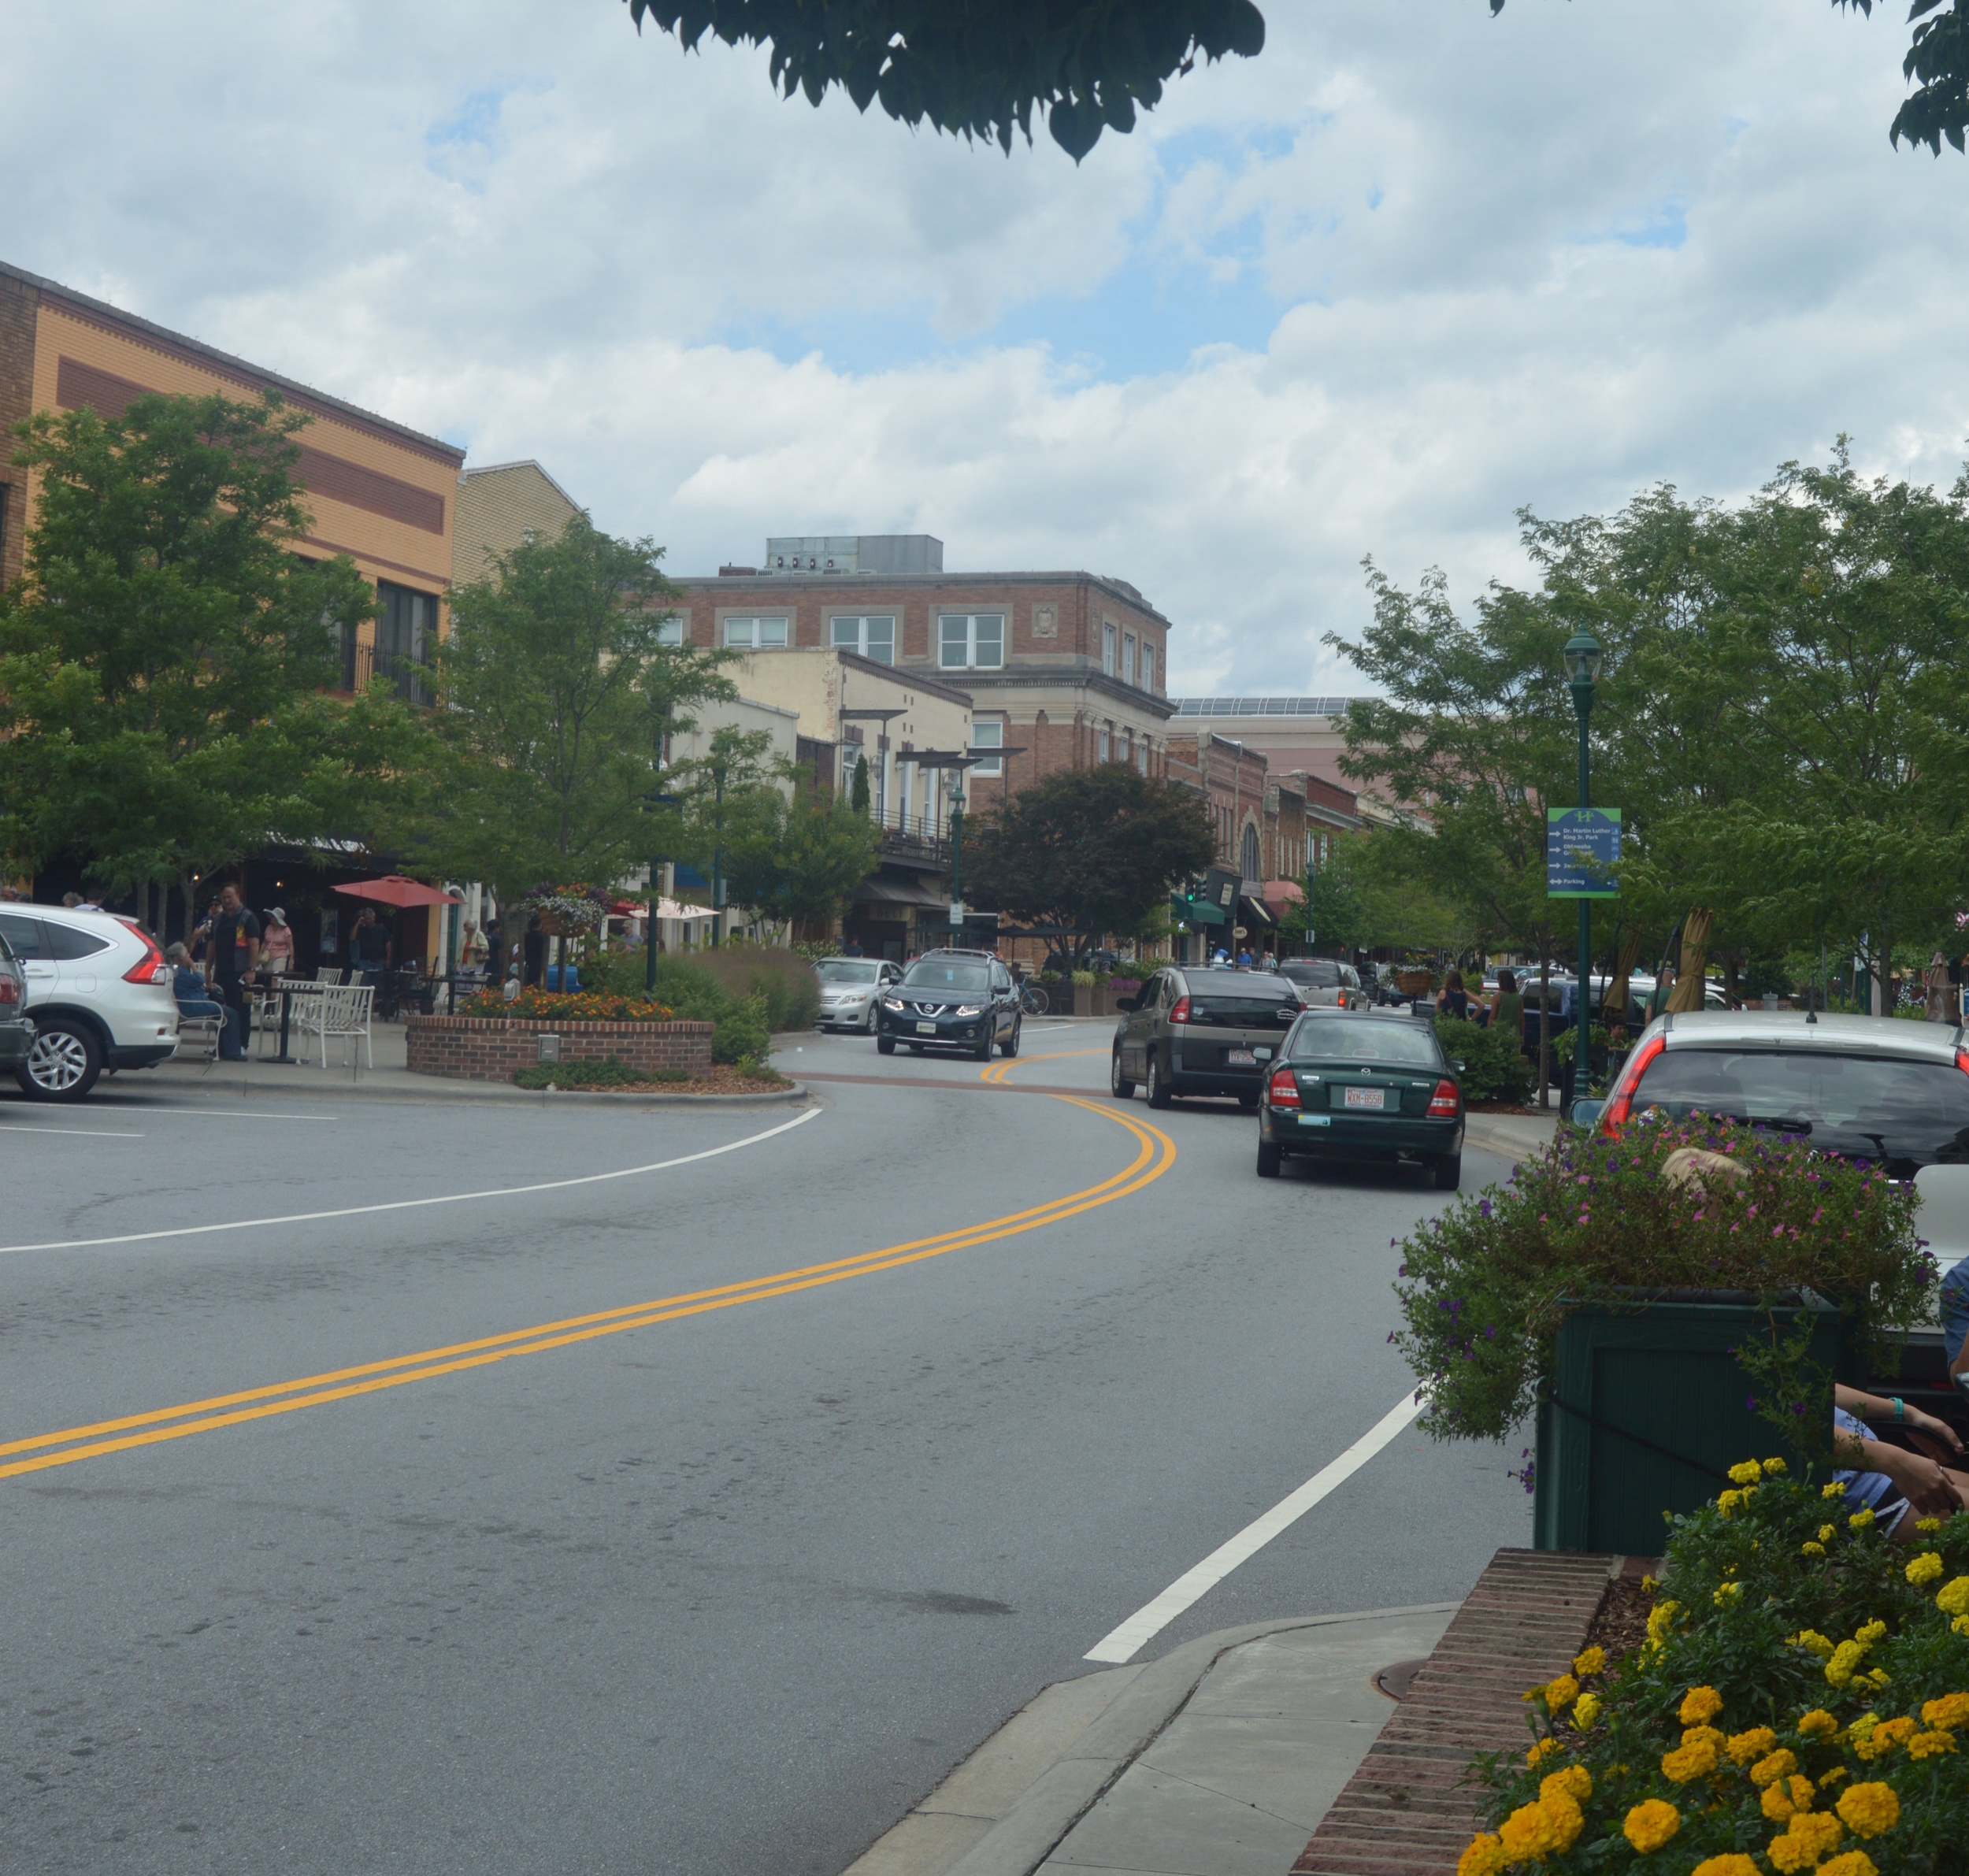 Hendersonville and Flat Rock, NC - Just thirty minutes from Asheville, Hendersonville sits on the edge of the Blue Ridge Mountains in the heart of a mountain playground where one famous poet & author decided to make his home.